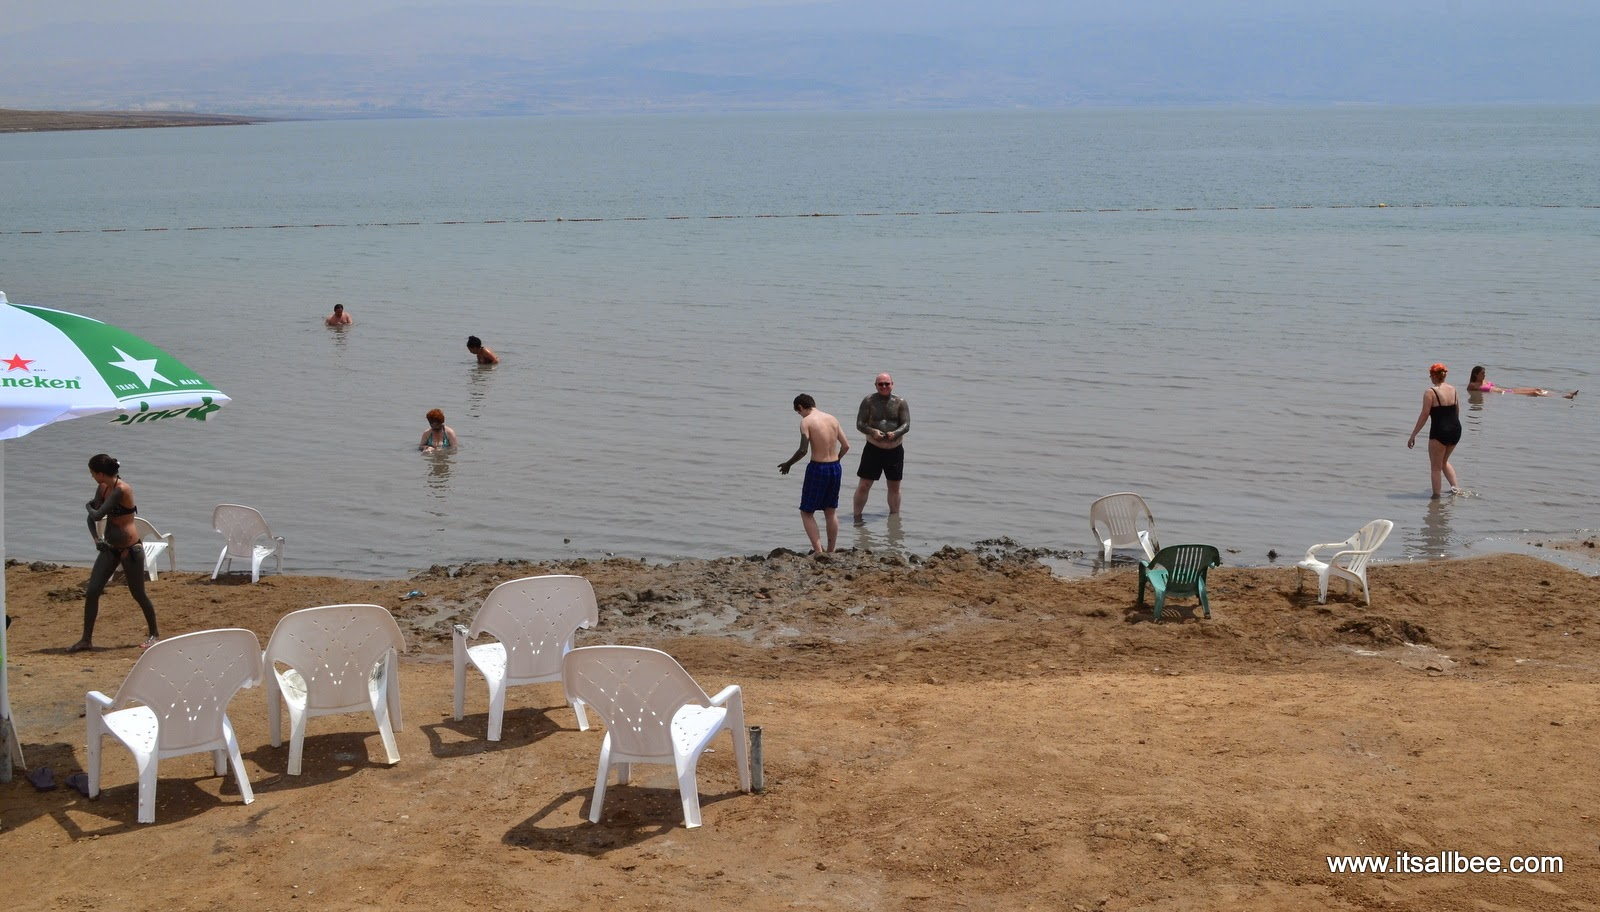 Floating in Israel's Dead Sea